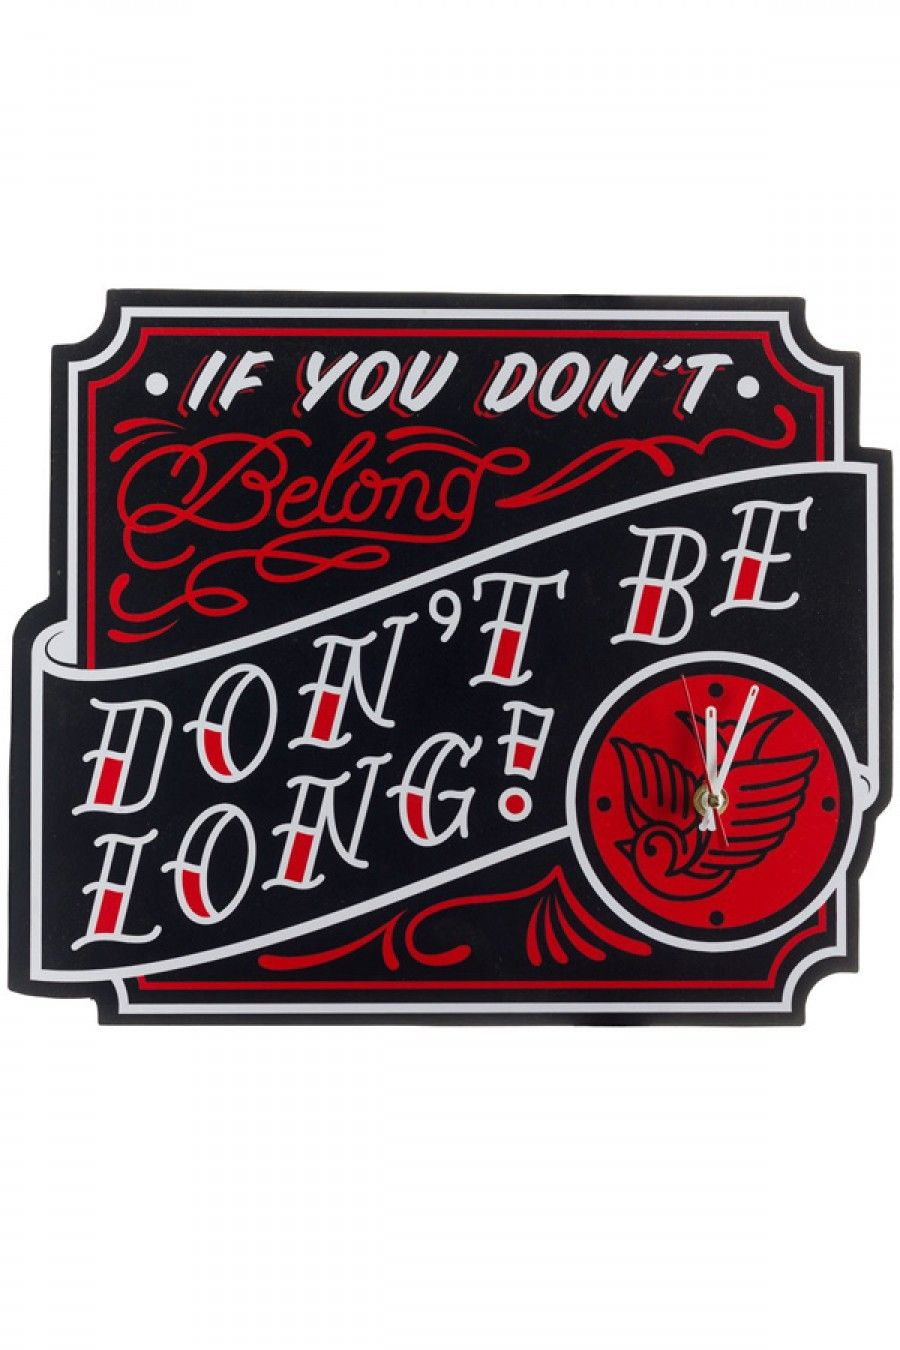 Sourpuss Don T Belong Clock Retro Tattoos Screen Printing